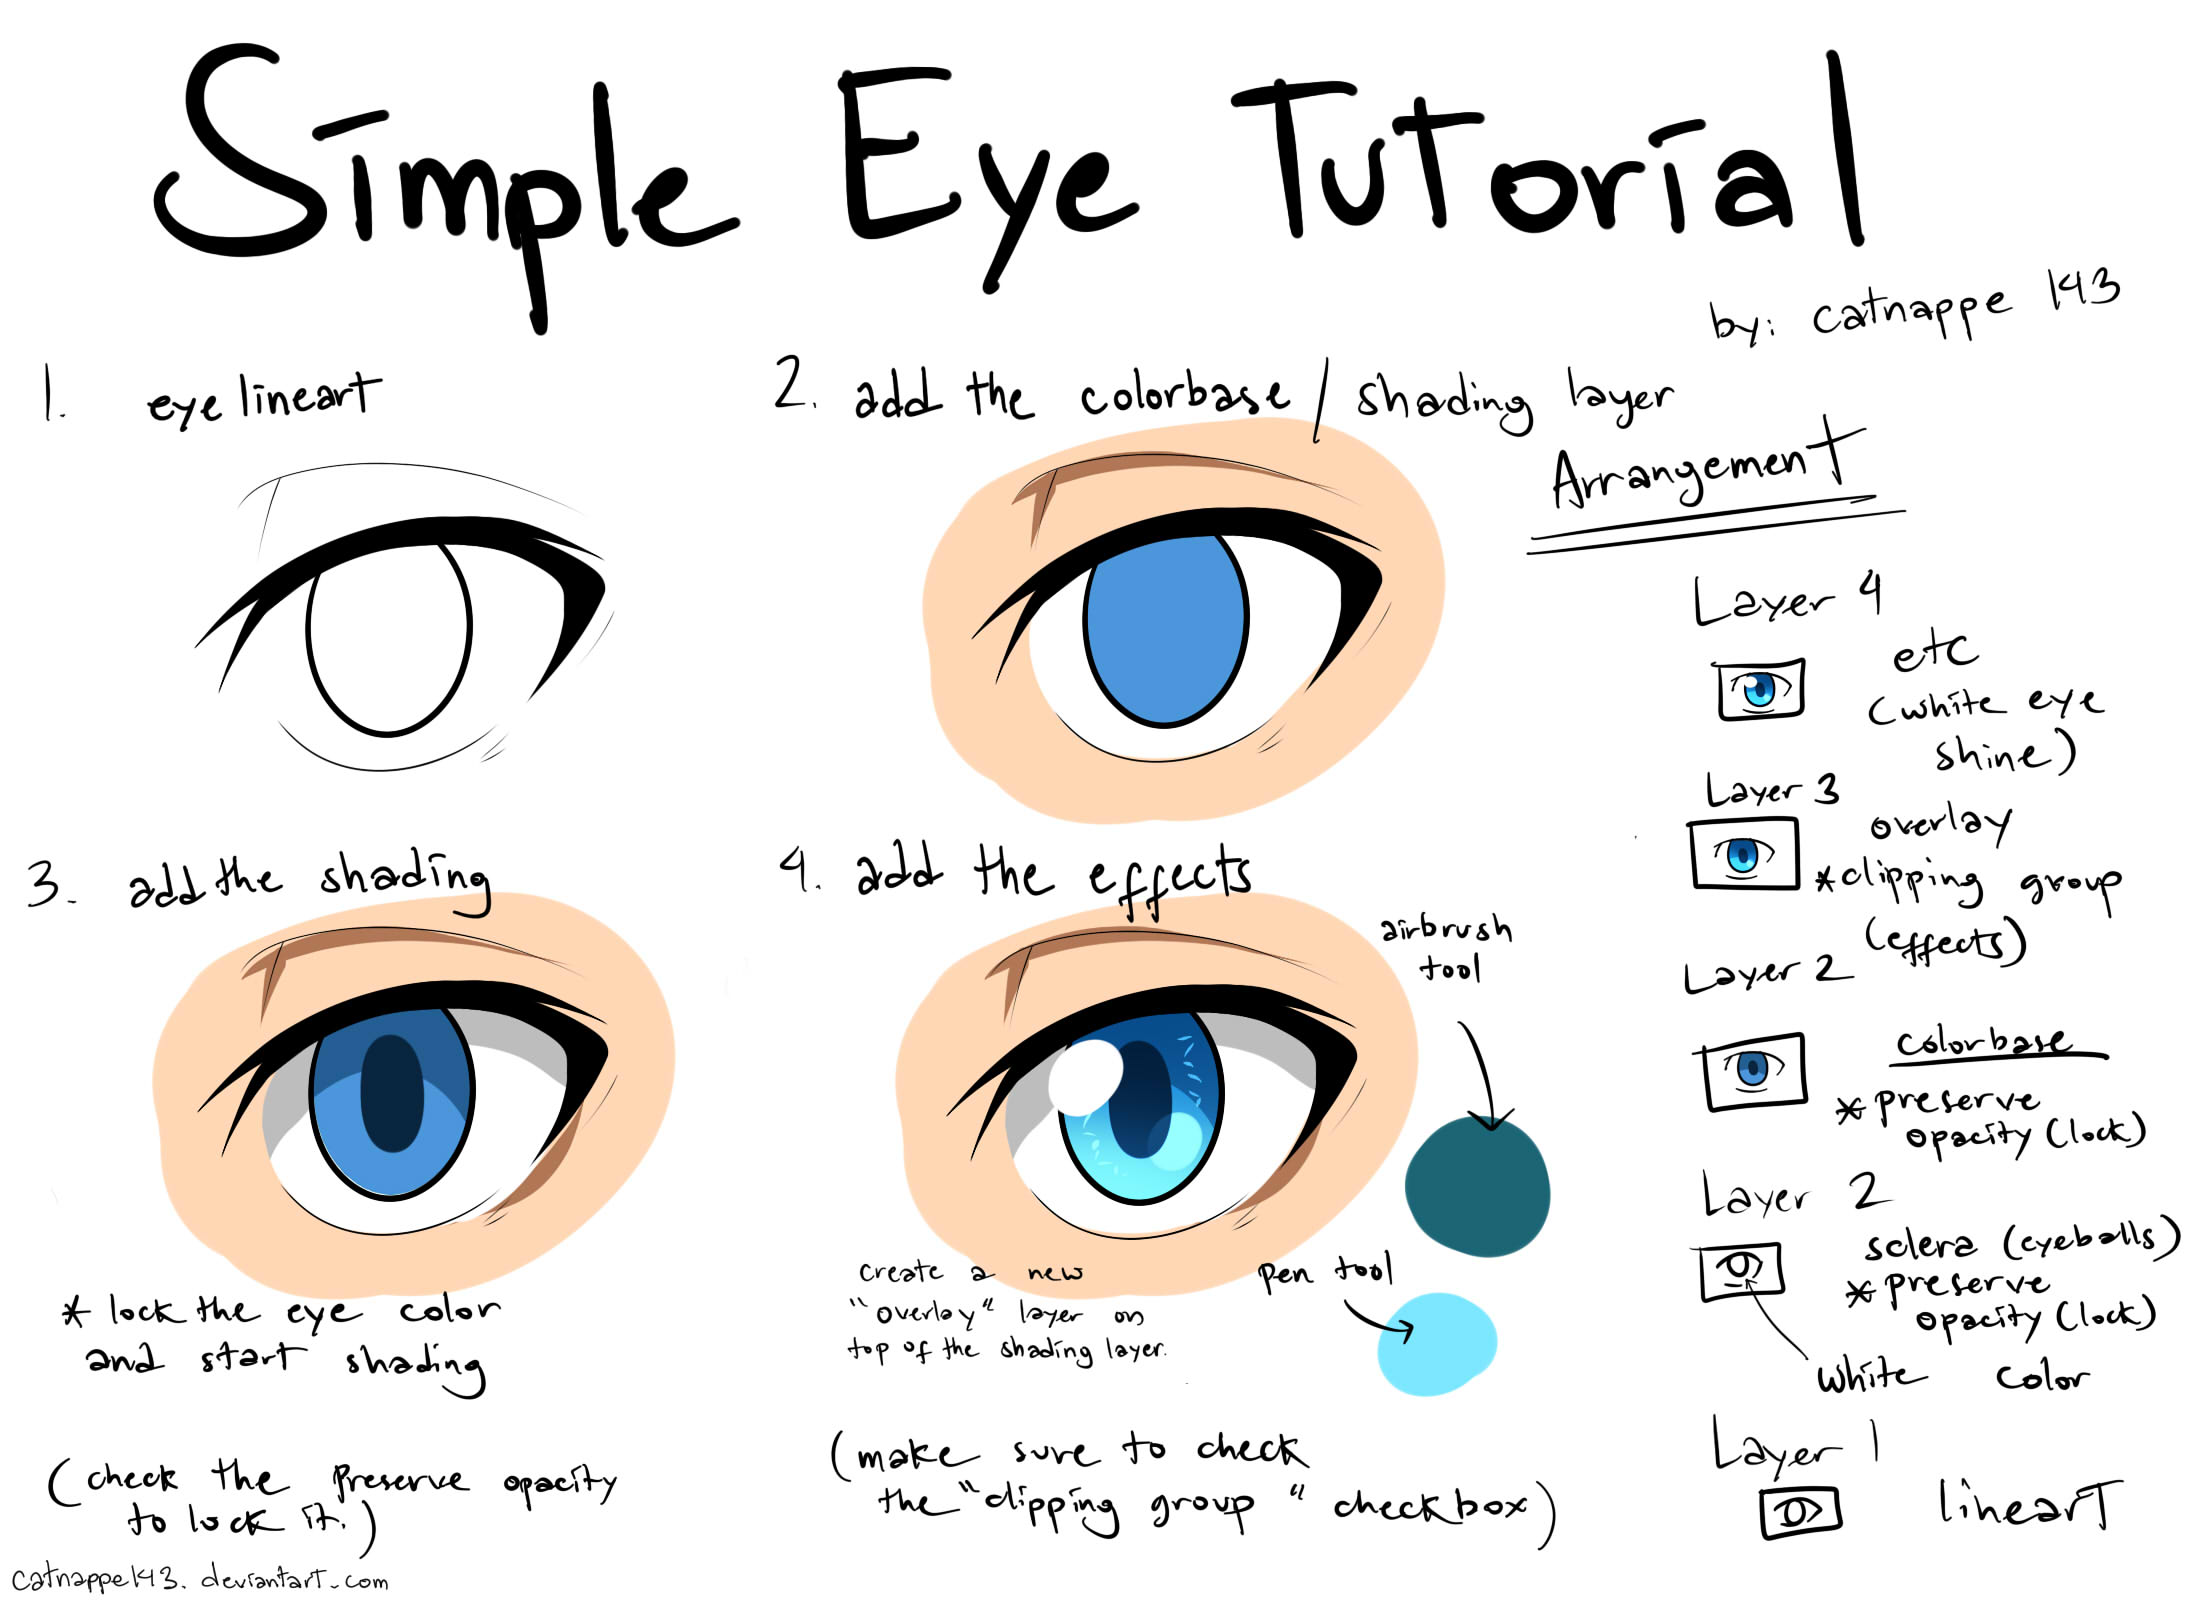 Simple Eye Tutorial by catnappe143